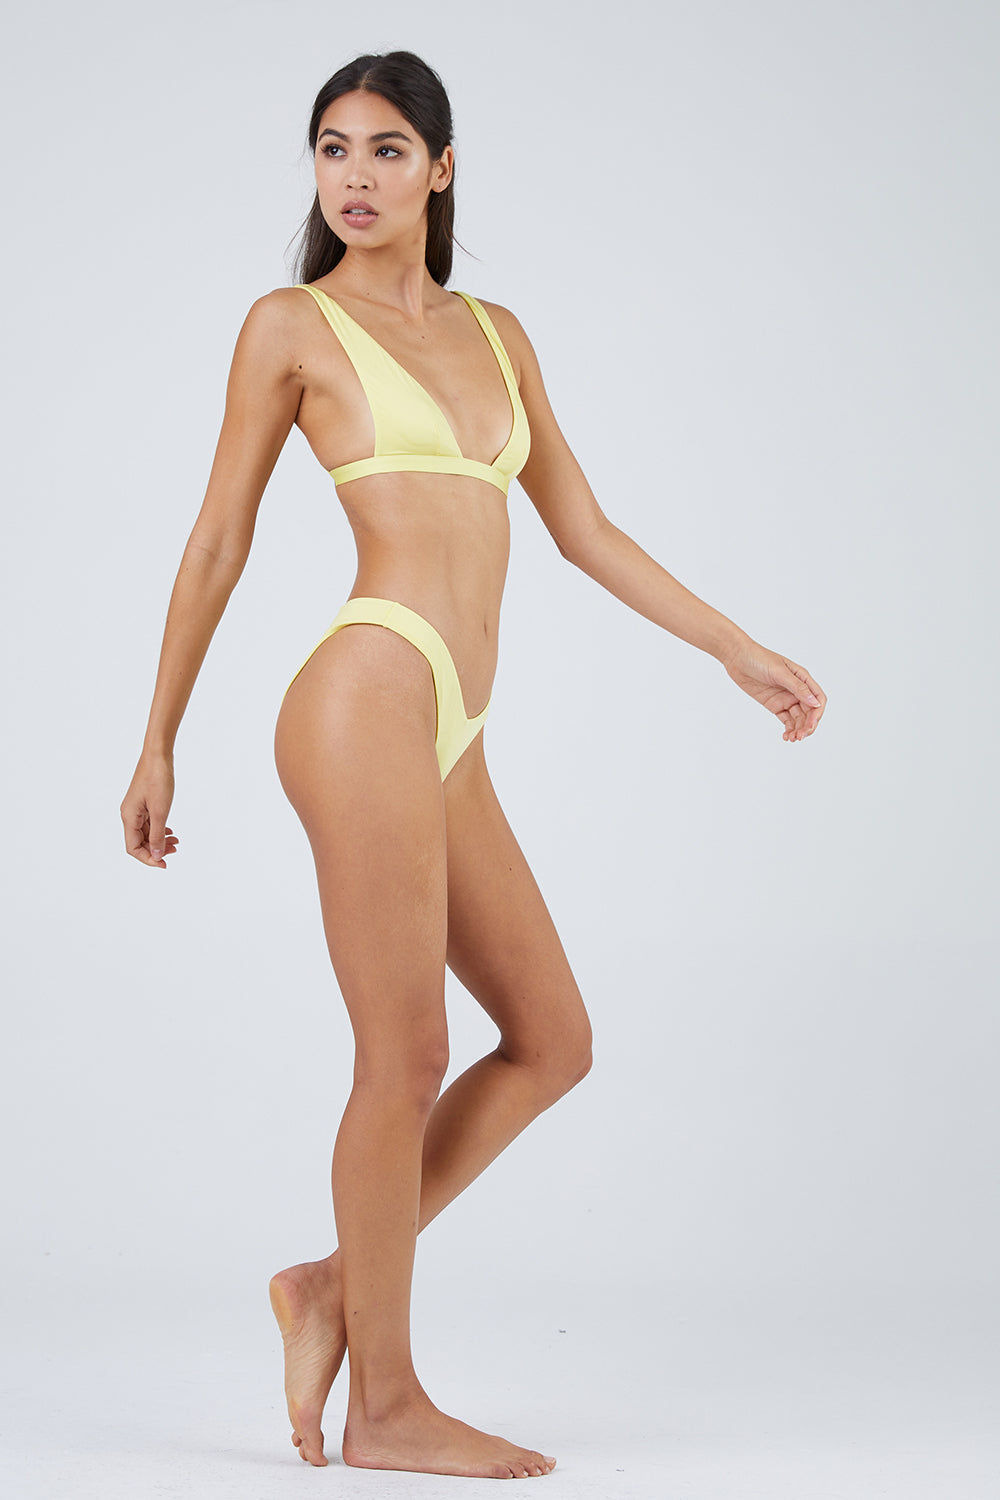 MONICA HANSEN BEACHWEAR Babe Watch V Bikini Bottom - Yellow Bikini Bottom | Yellow| Monica Hansen Beachwear Babe Watch V Bikini Bottom - Yellow Waist cut down in a V shape in front and in back Sides can be worn low rise or mid rise High cut leg  Cheeky coverage Italian fabric 85% Nylon 15% Elastane Manufactured in Italy Hand wash cold. Side View